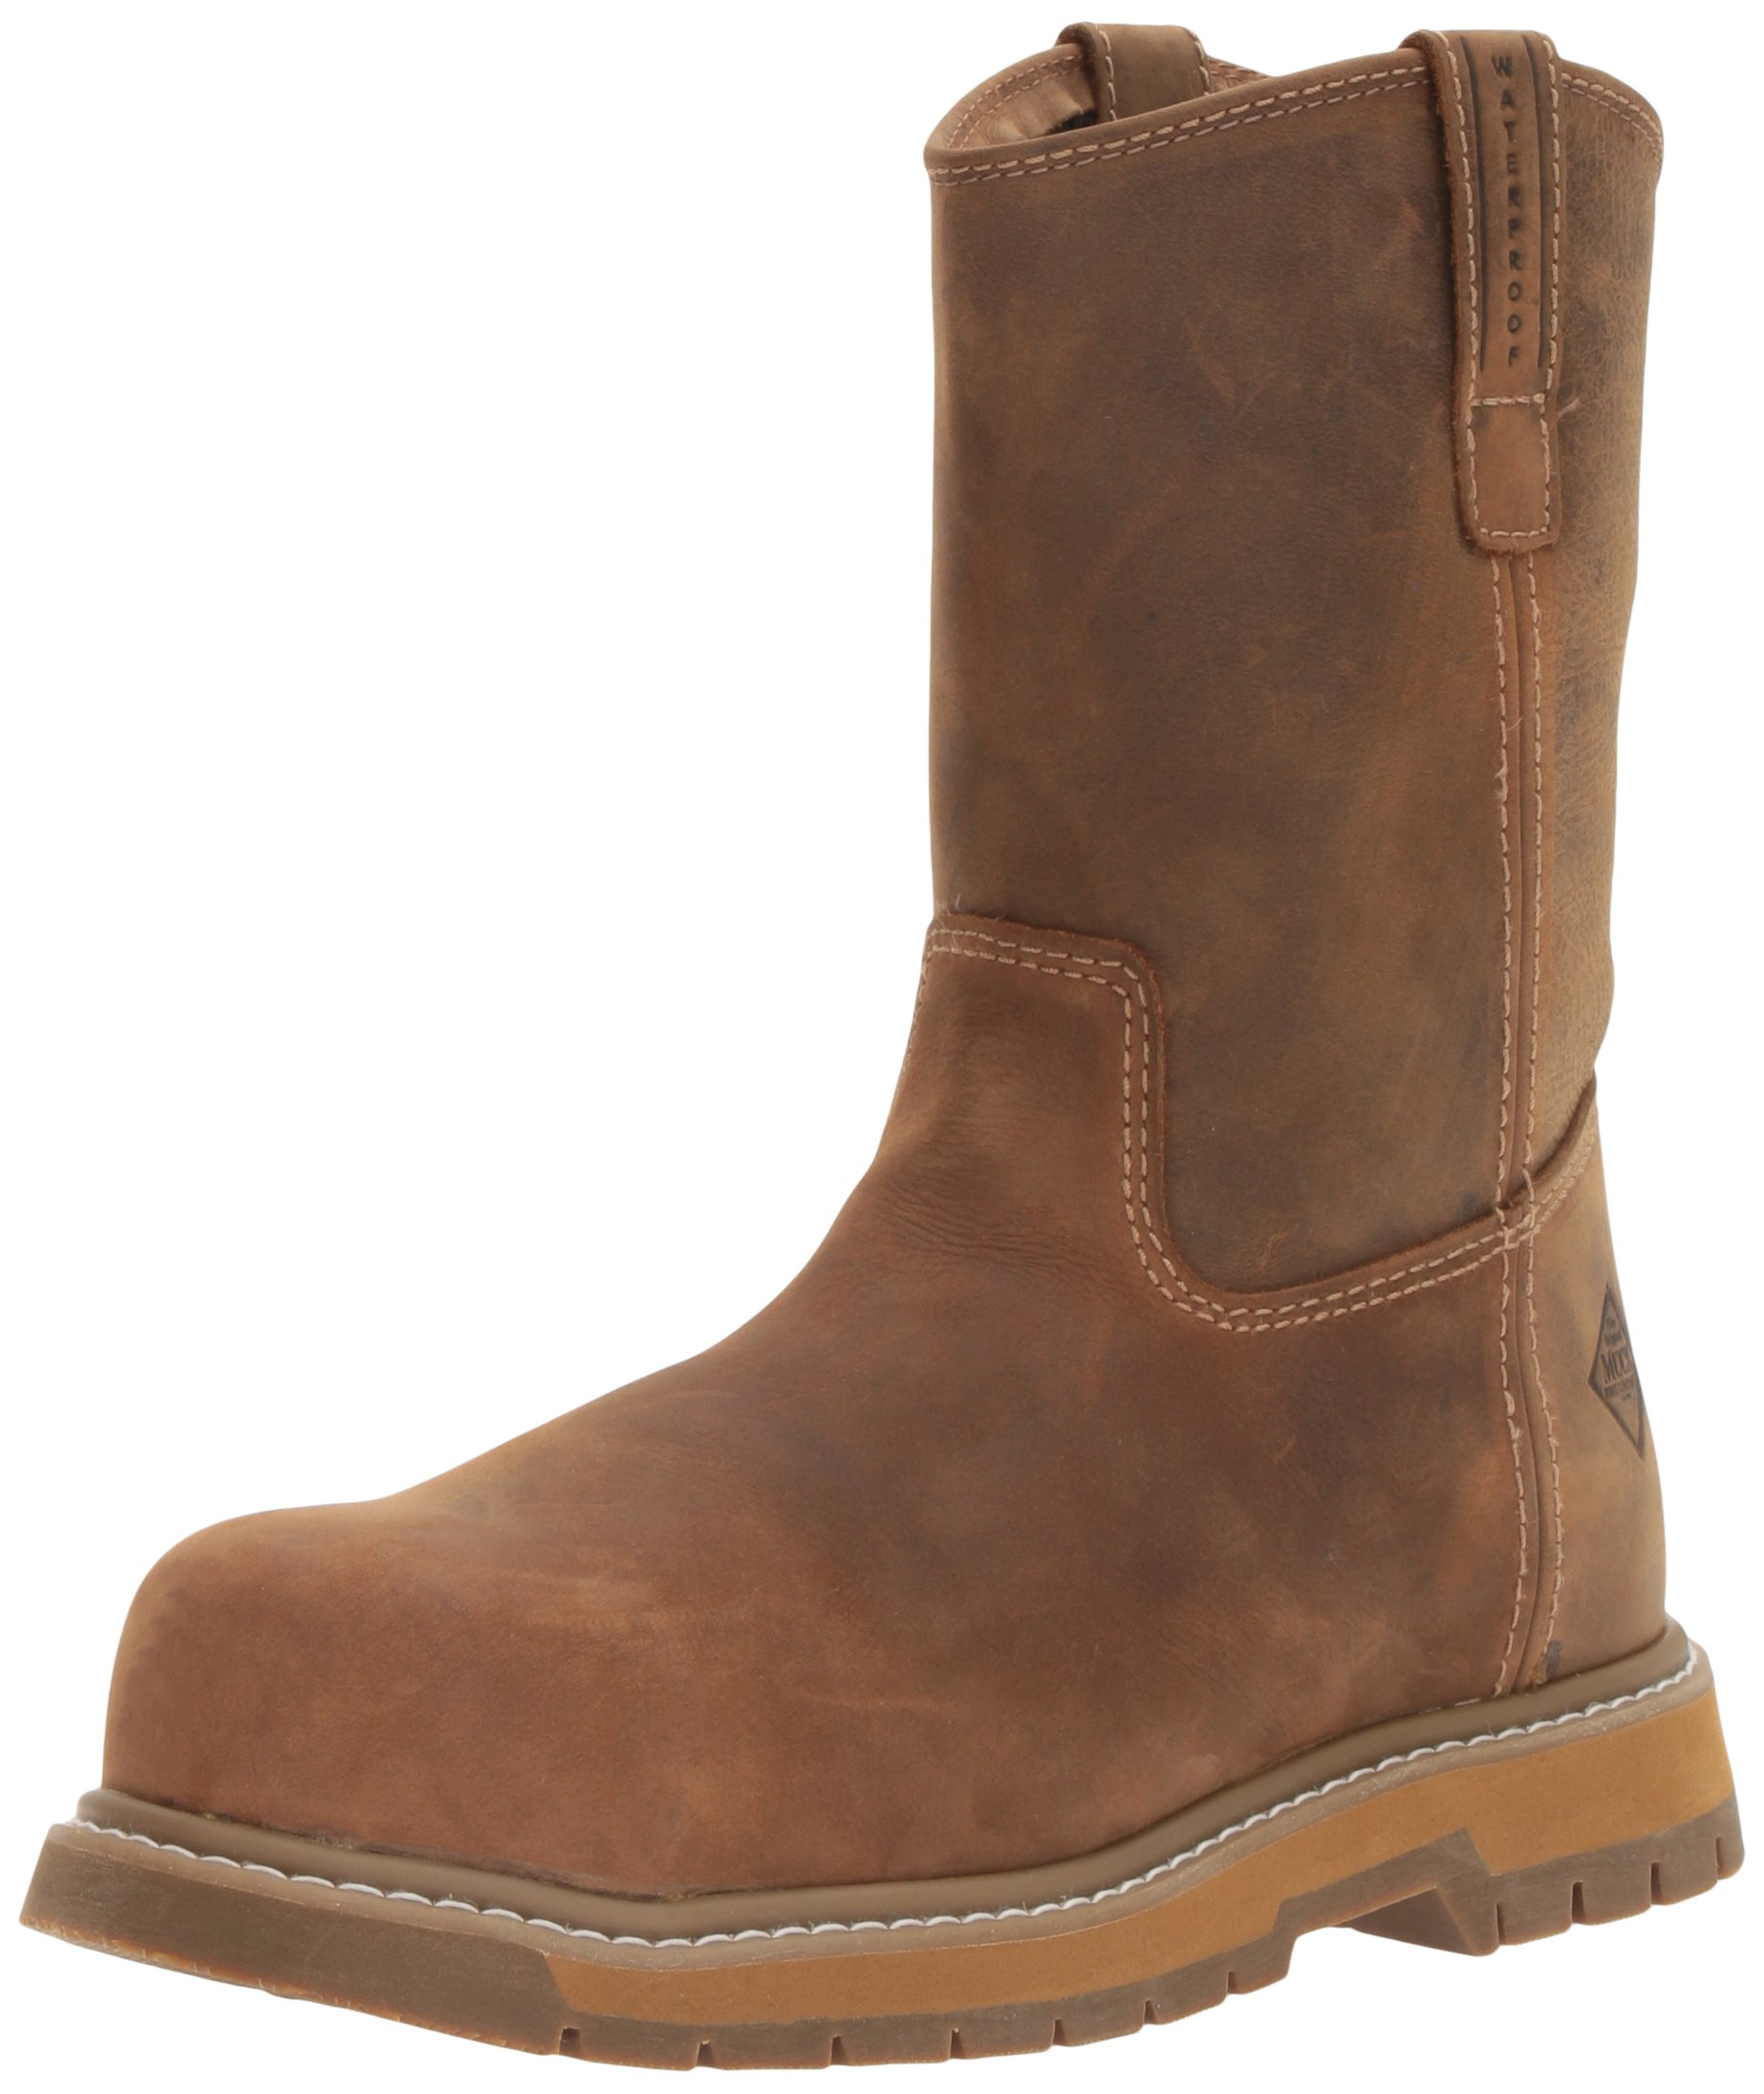 Muck Boot Men's Wellie Classic Comp Toe Work Boot, Brown, 13 M US